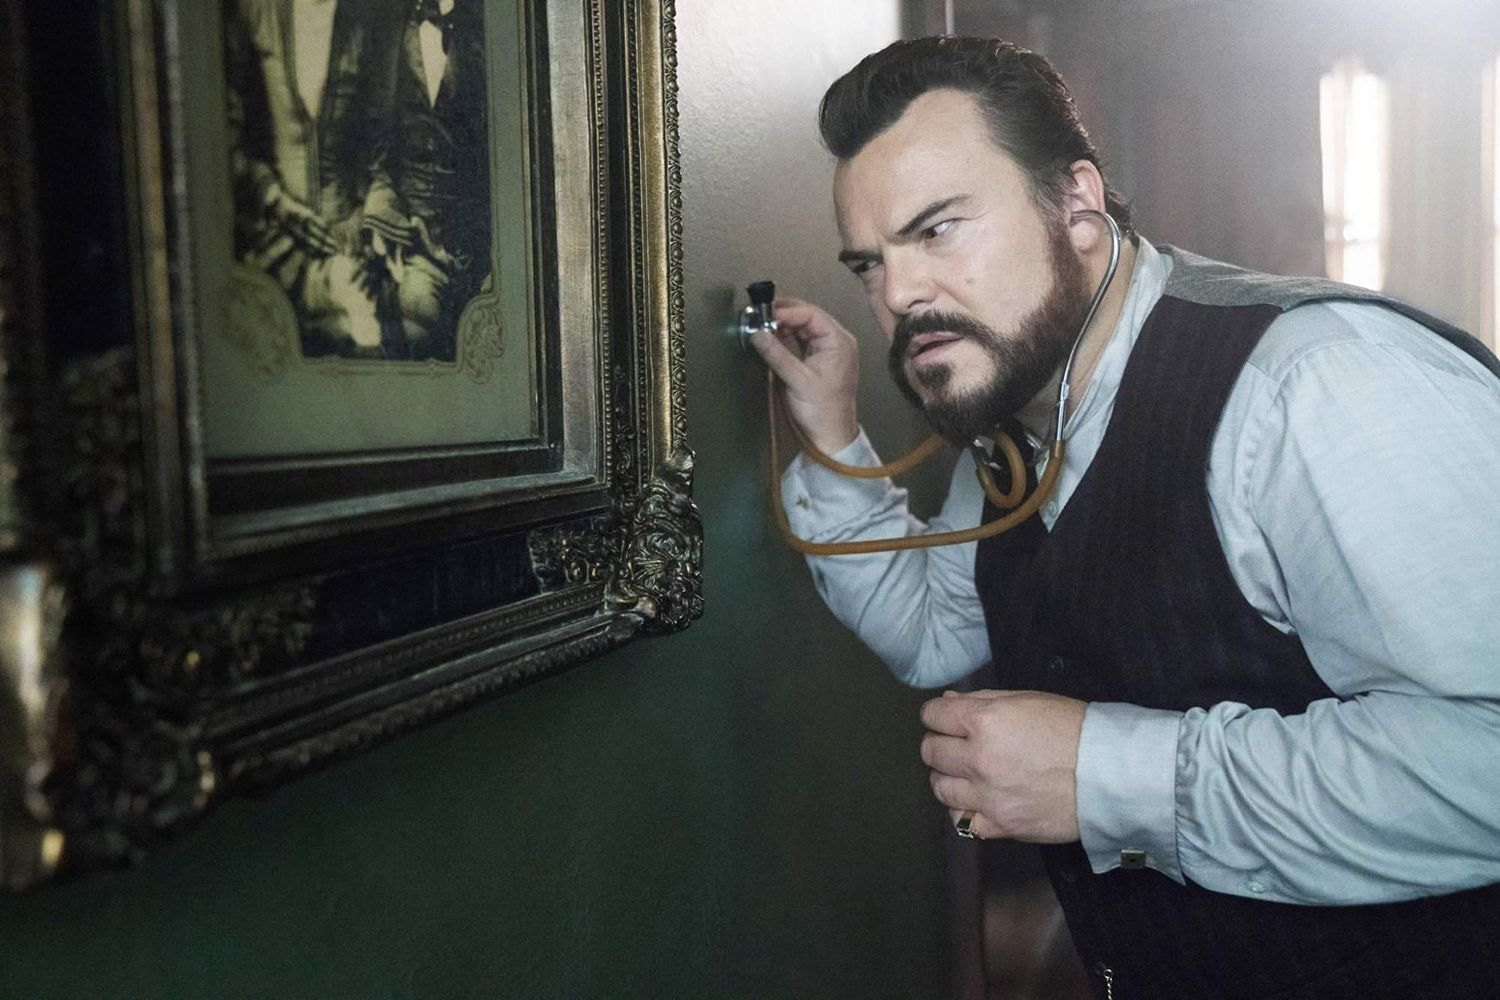 jack black in The House With a Clock in Its Walls